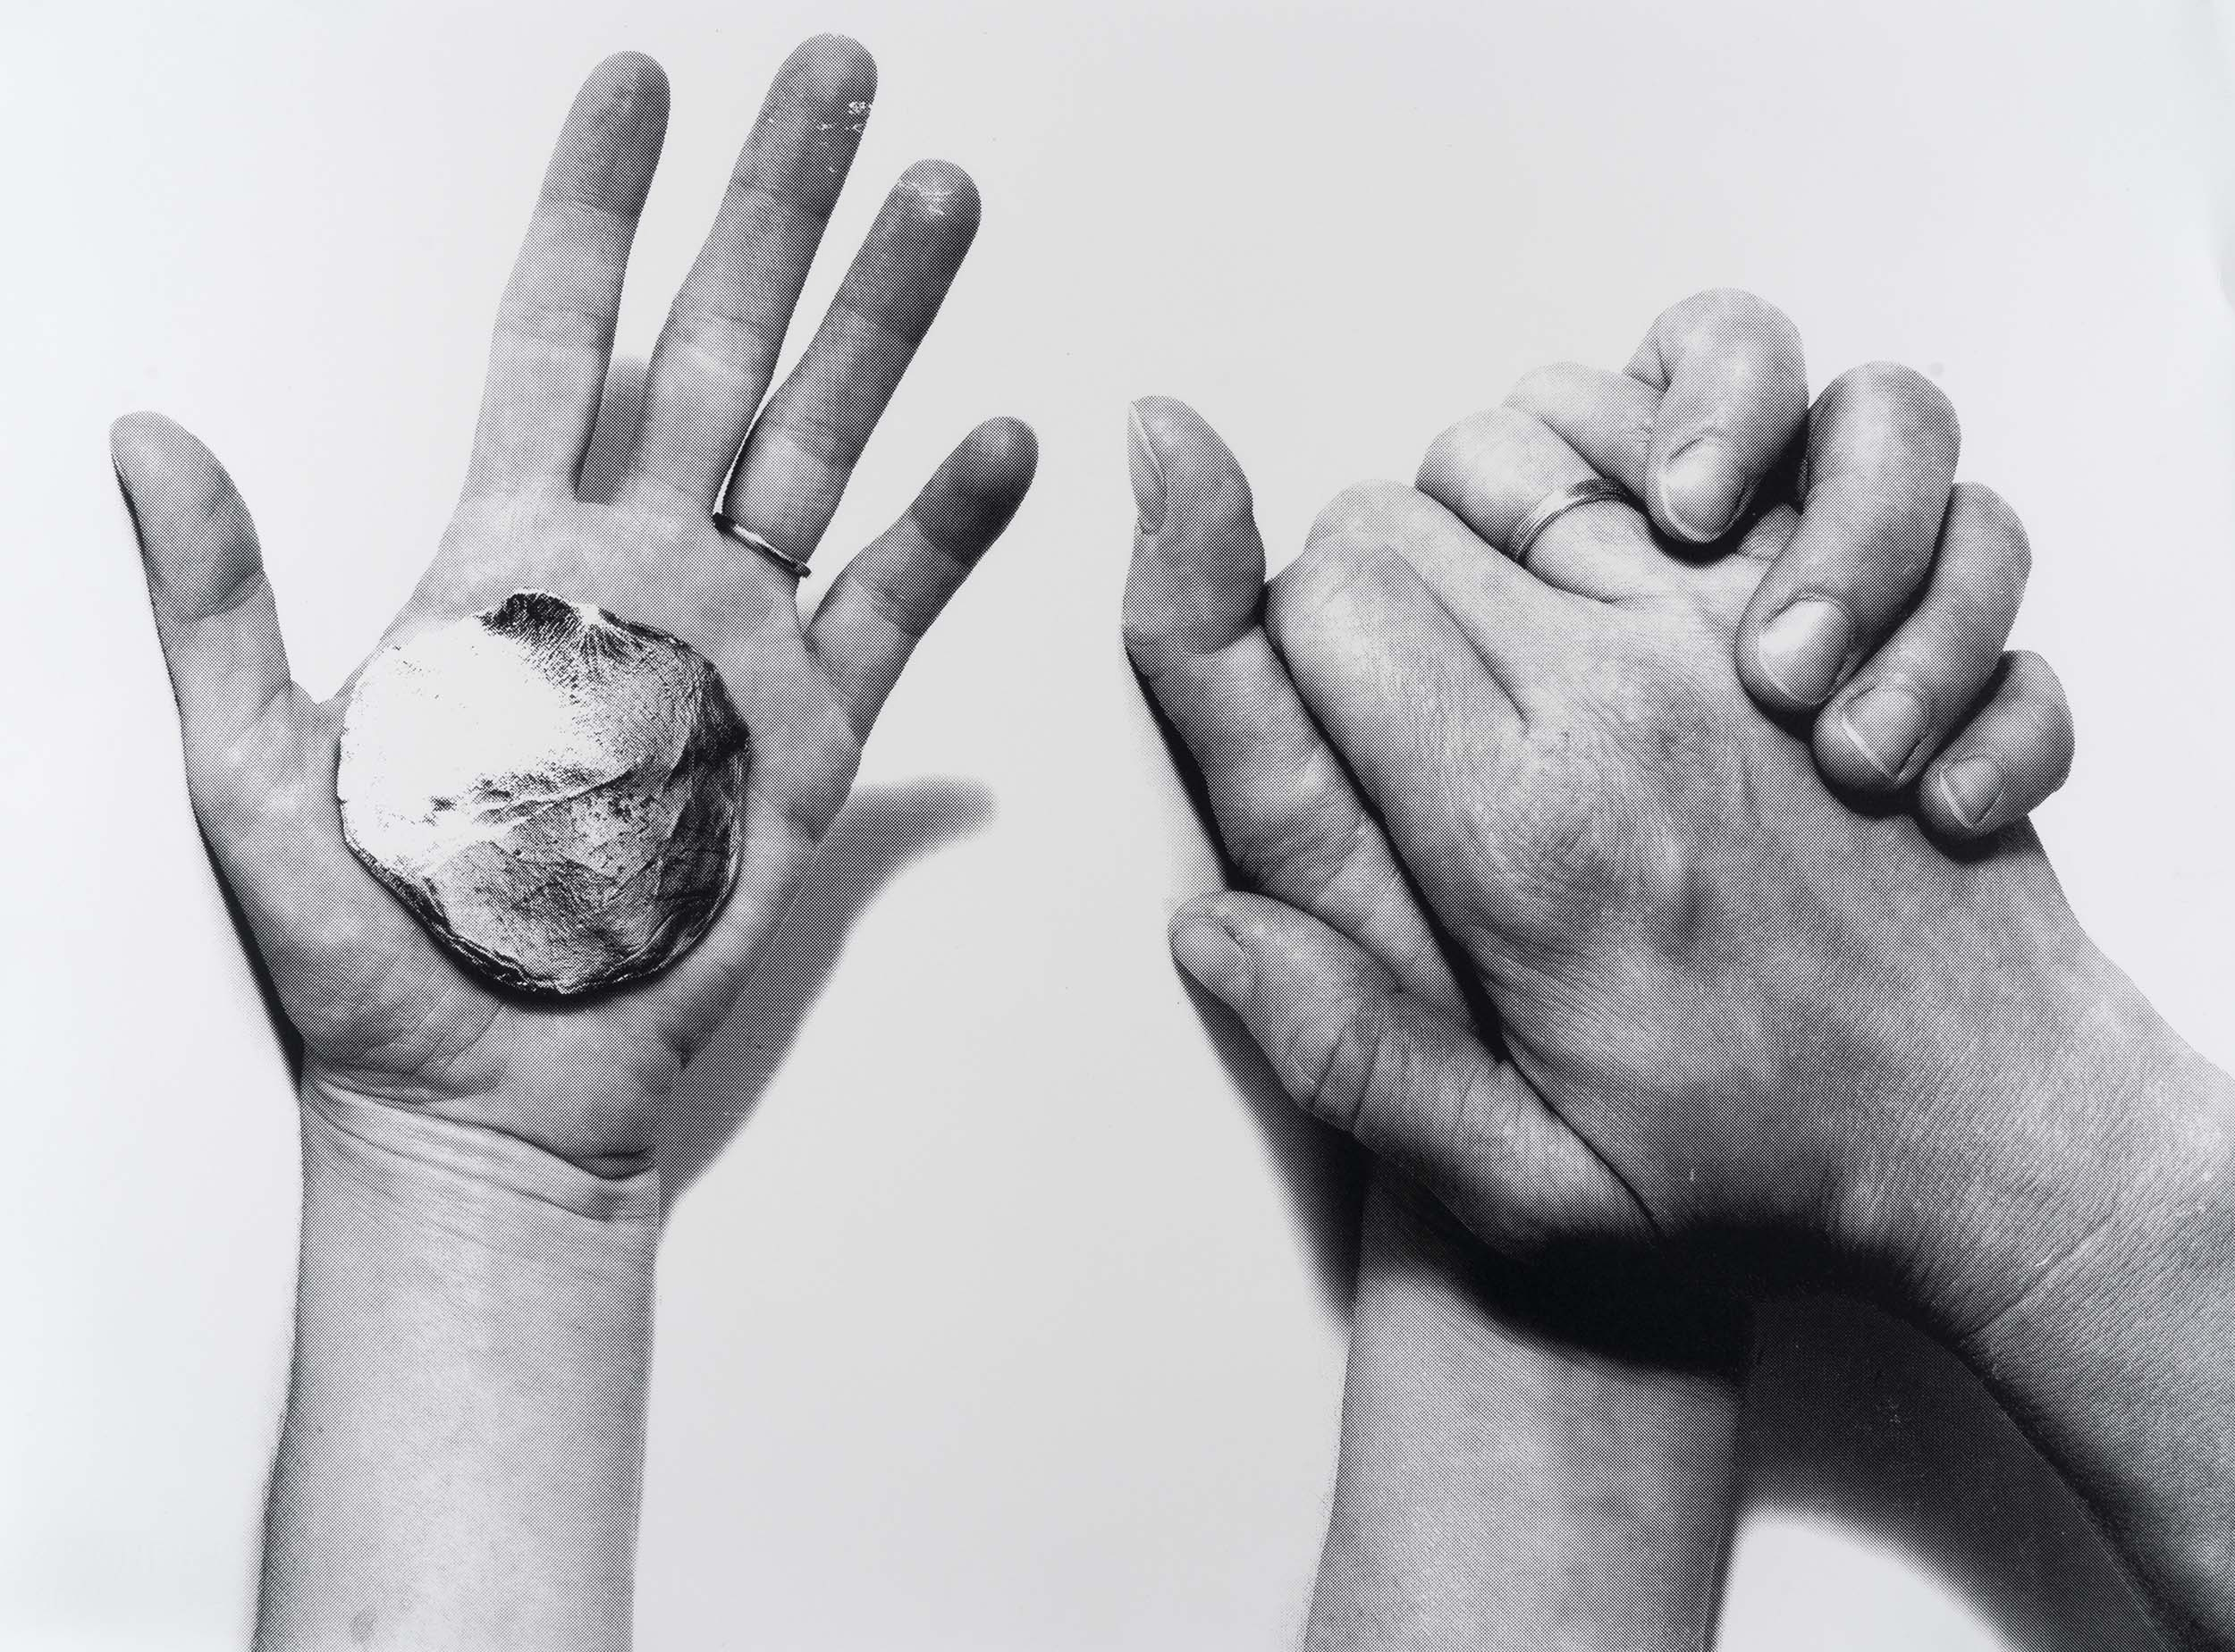 Silkscreen print showing a person's hand holding a small ceramic disk in their palm and two hands folded together at the palm, as if to shape that same disk.